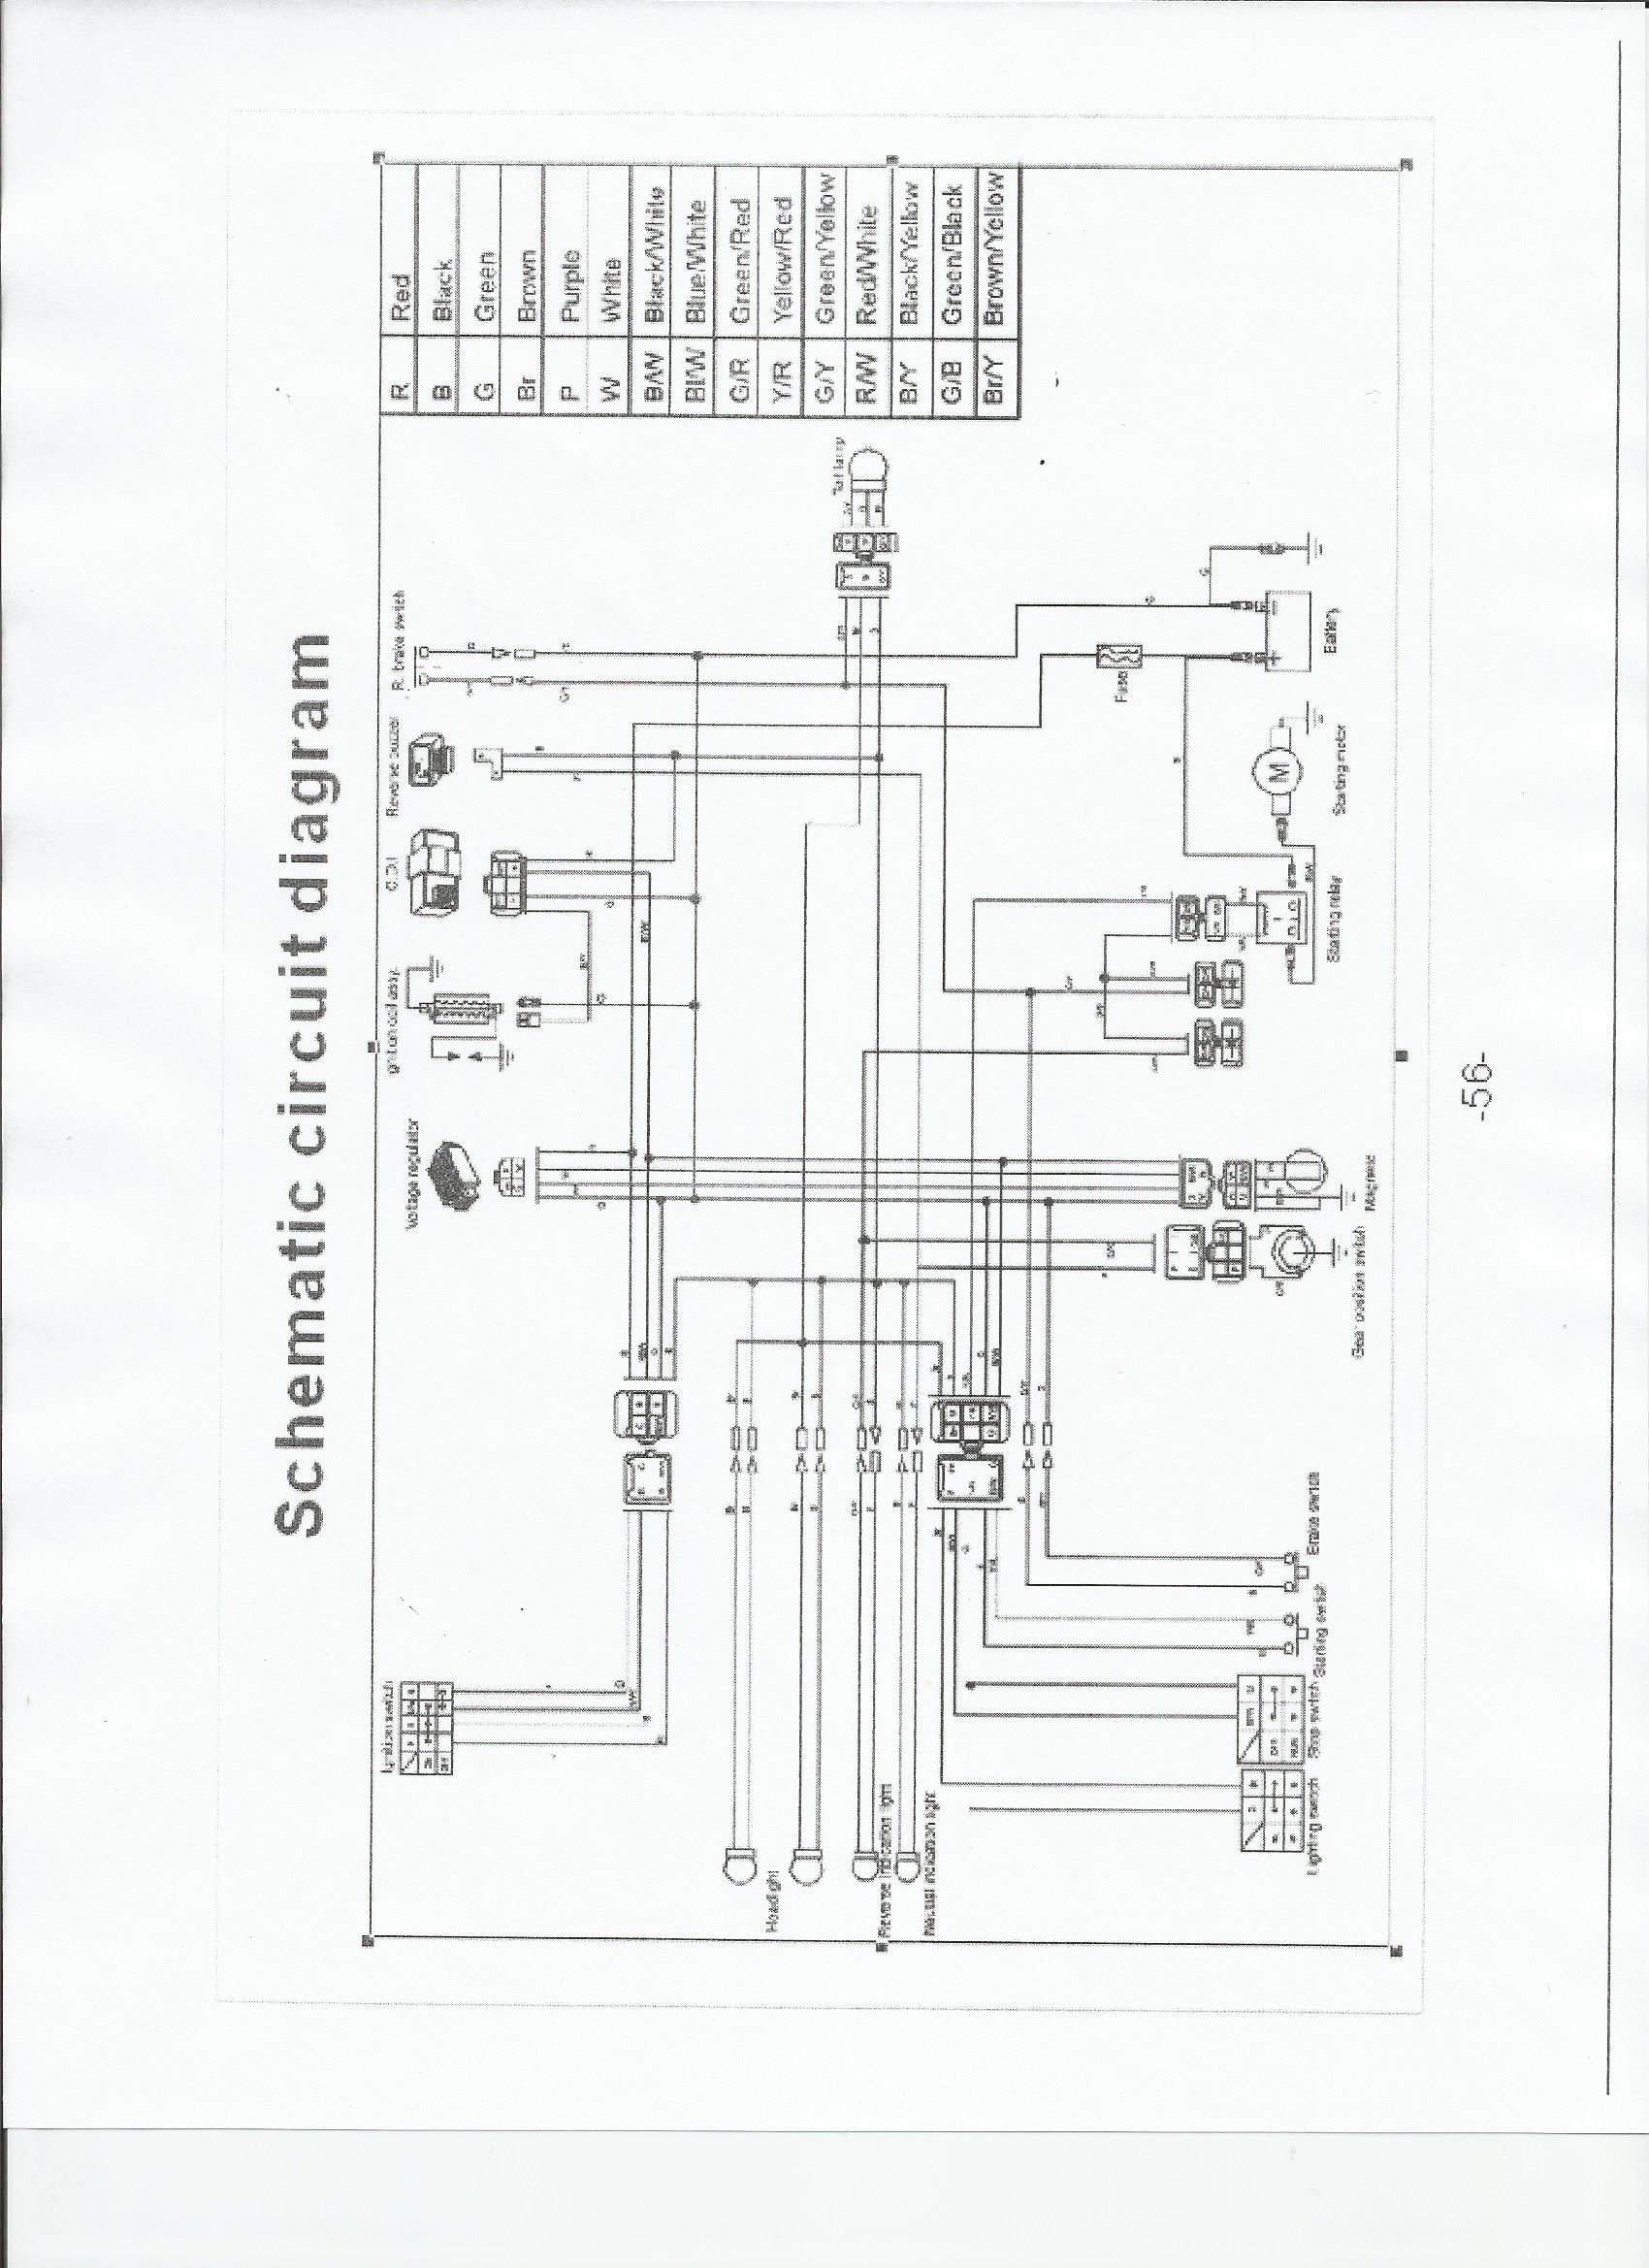 tao tao wiring schematic taotao ata110 b wiring diagram taotao 110cc wiring diagram wiring diagram for 110cc chinese atv at bakdesigns.co